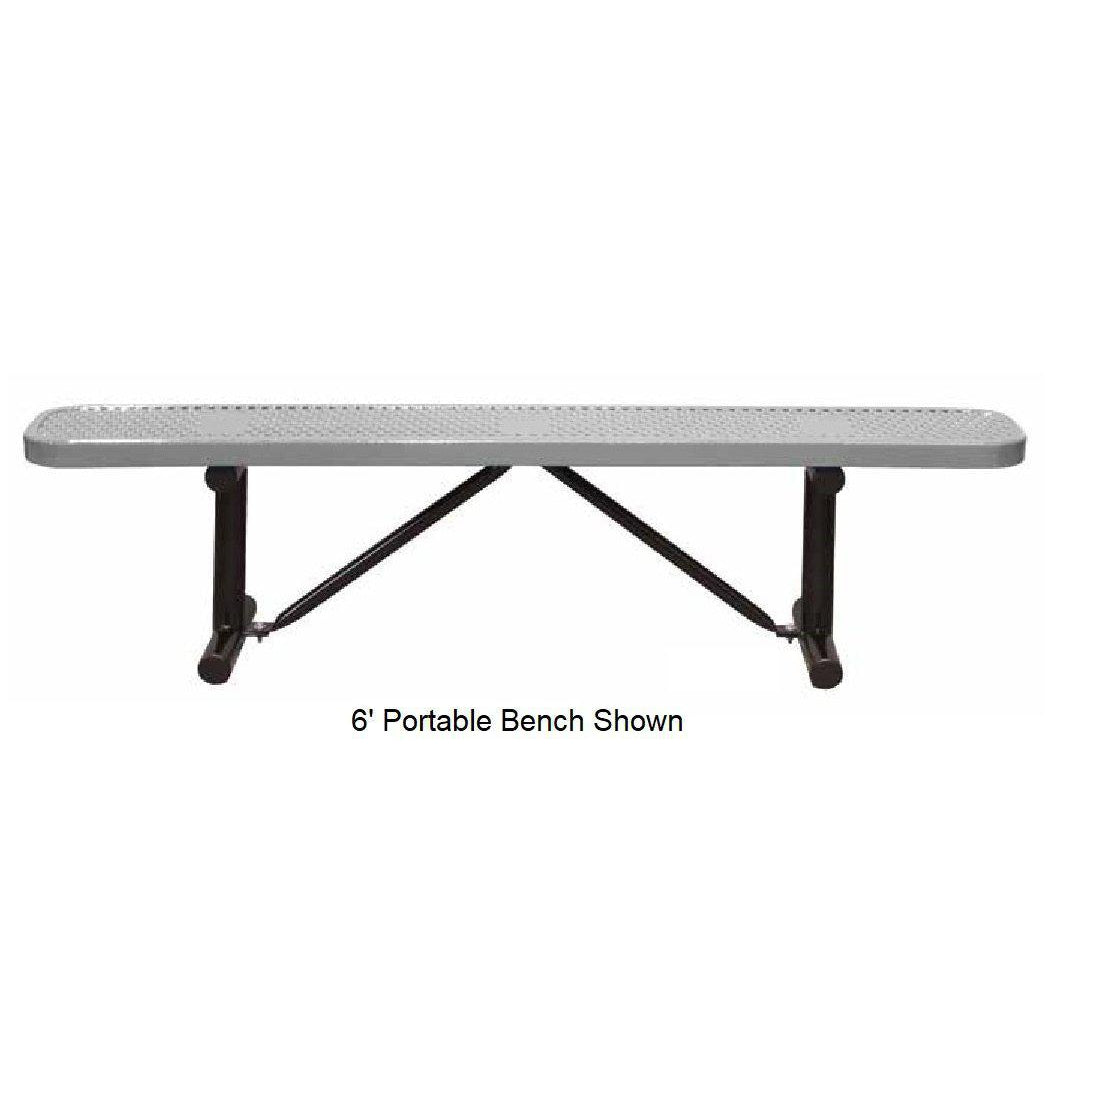 4' Standard Perforated Bench Without Back, In Ground Mount